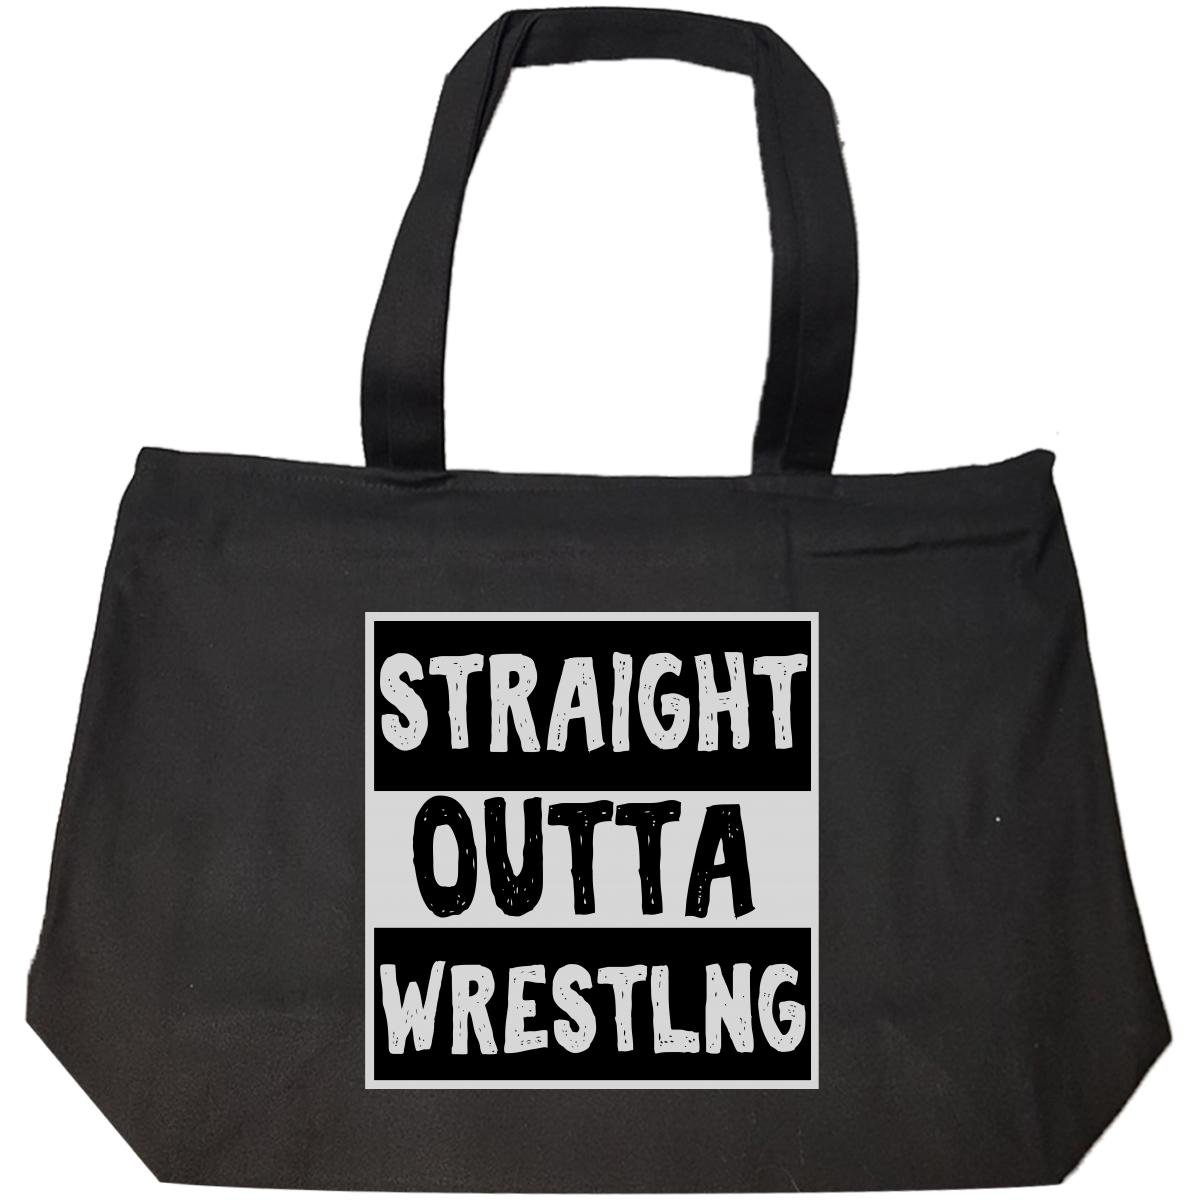 Straight Outta Wrestling Typography Black And White Funny - Tote Bag With Zip